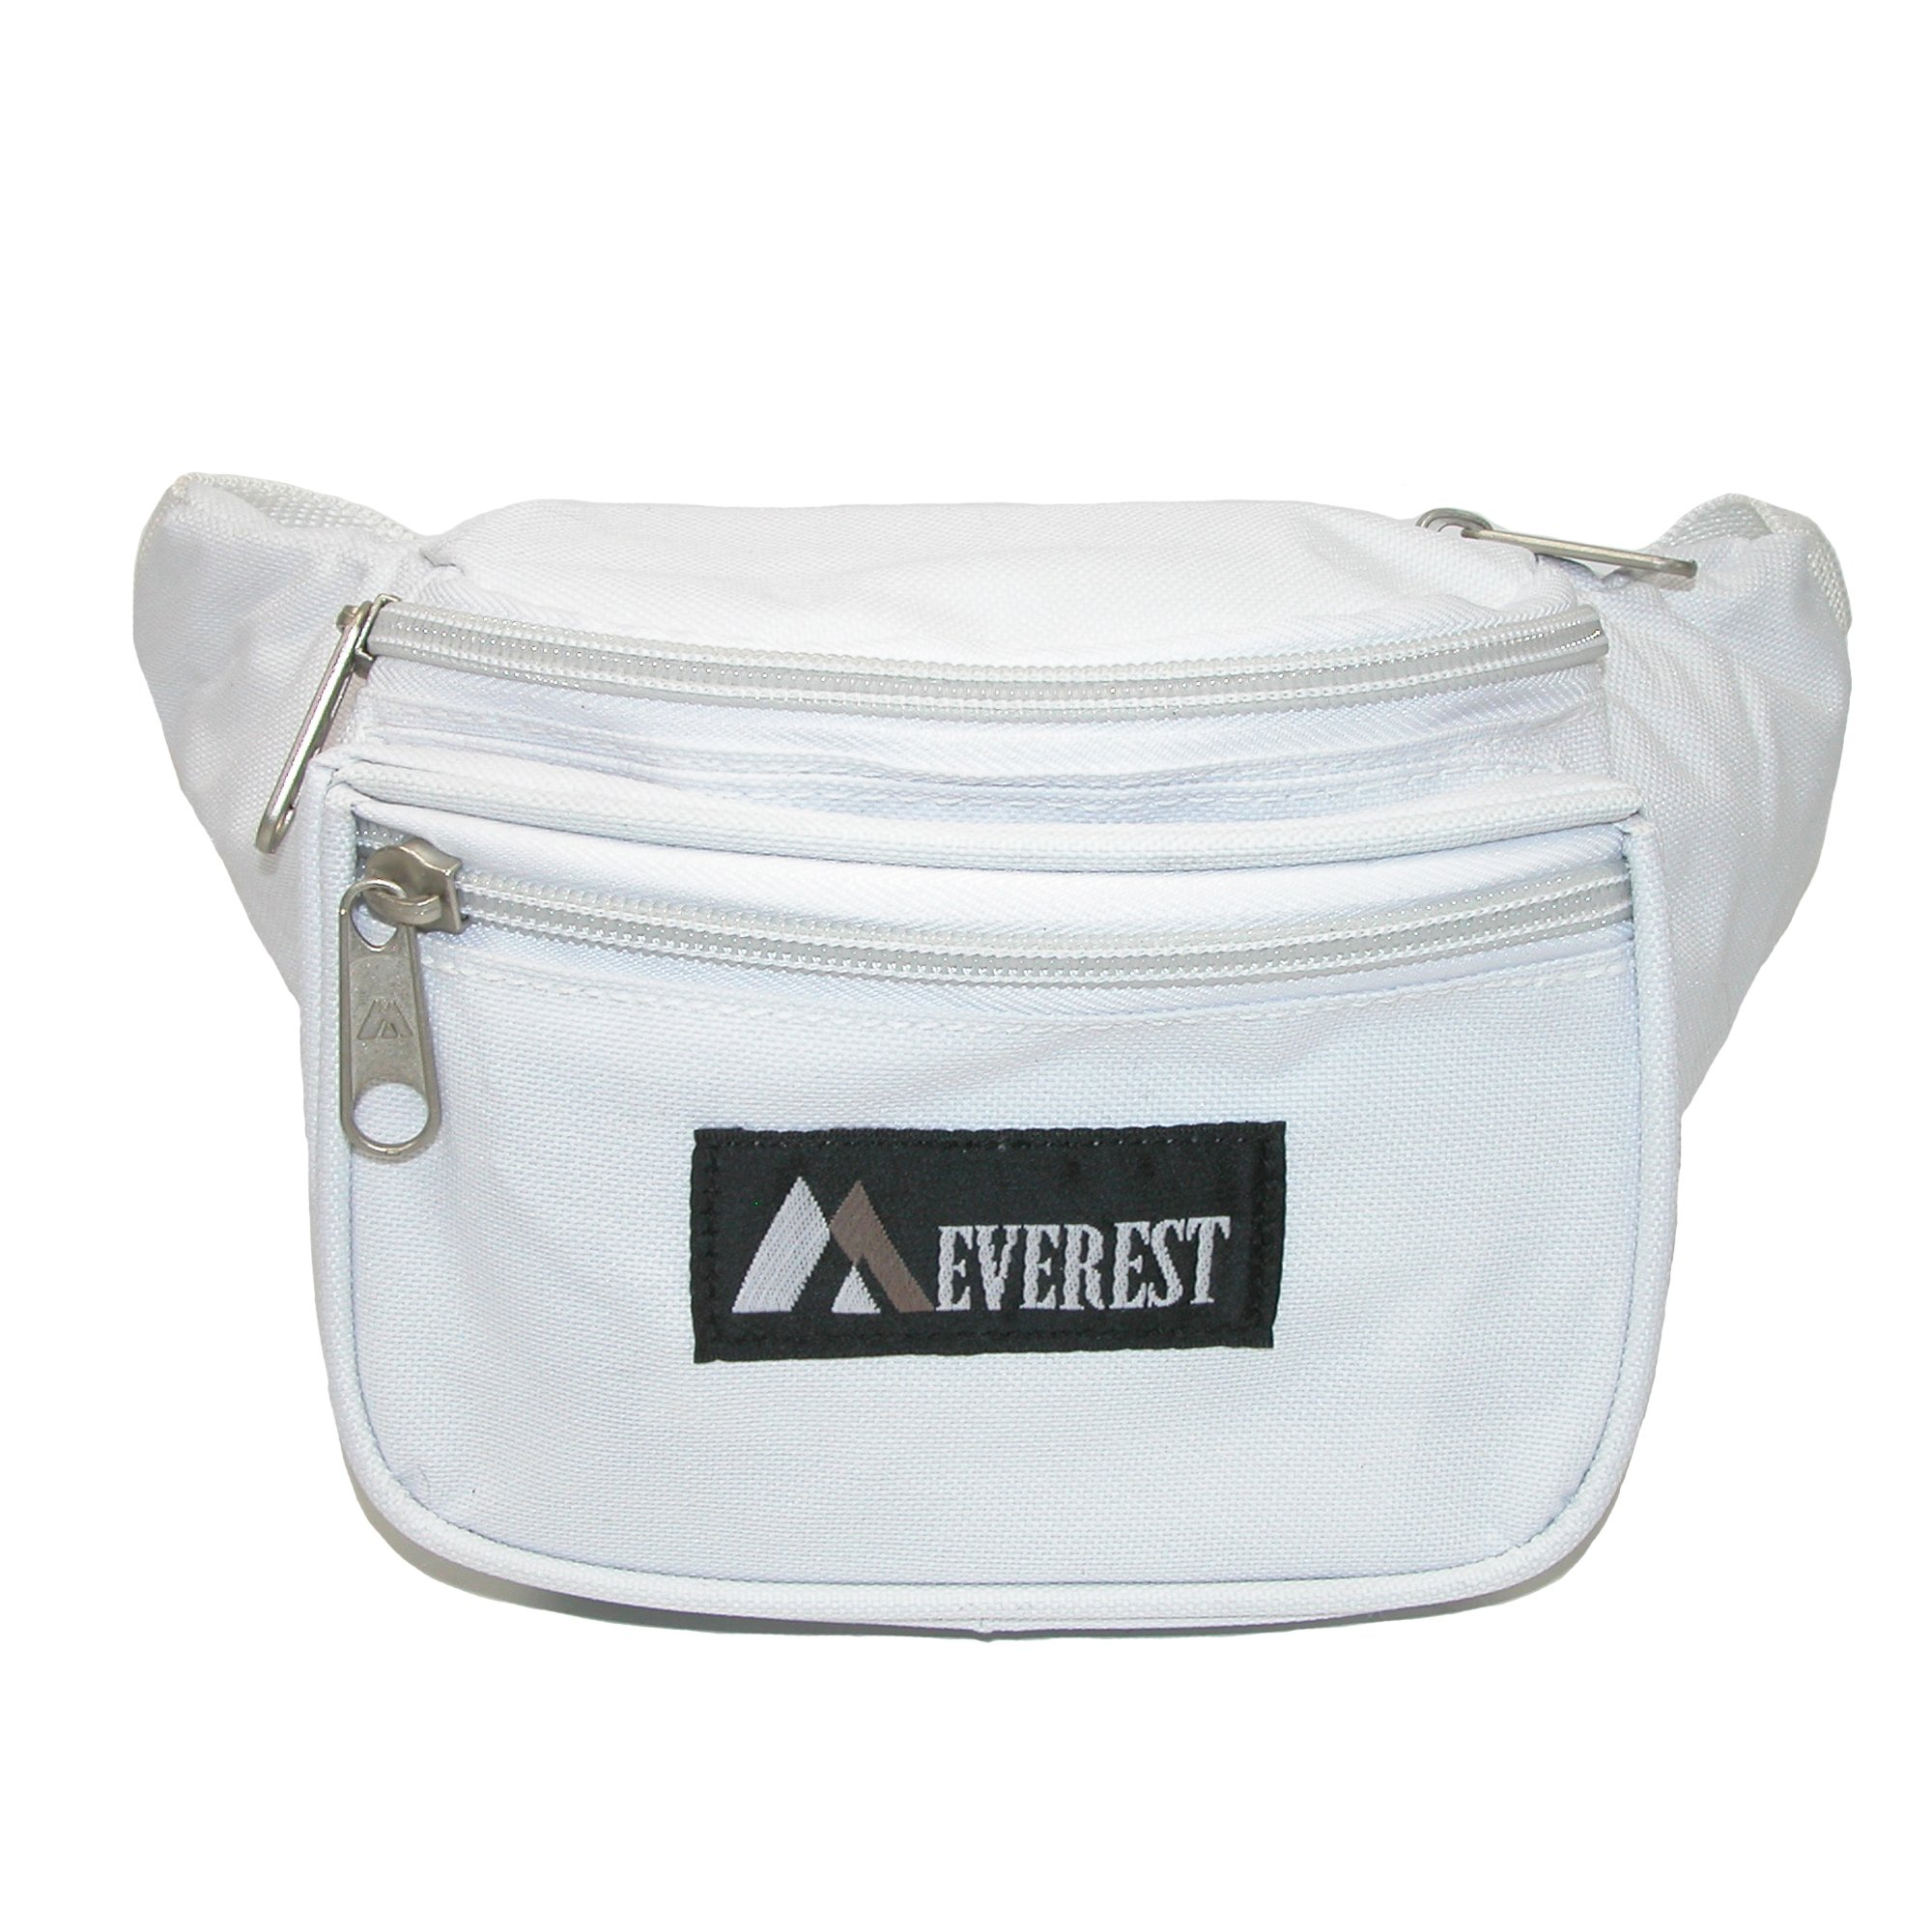 Everest Durable Fabric Waist Packs (Case of 50), Digital Camo by EVEREST (Image #4)